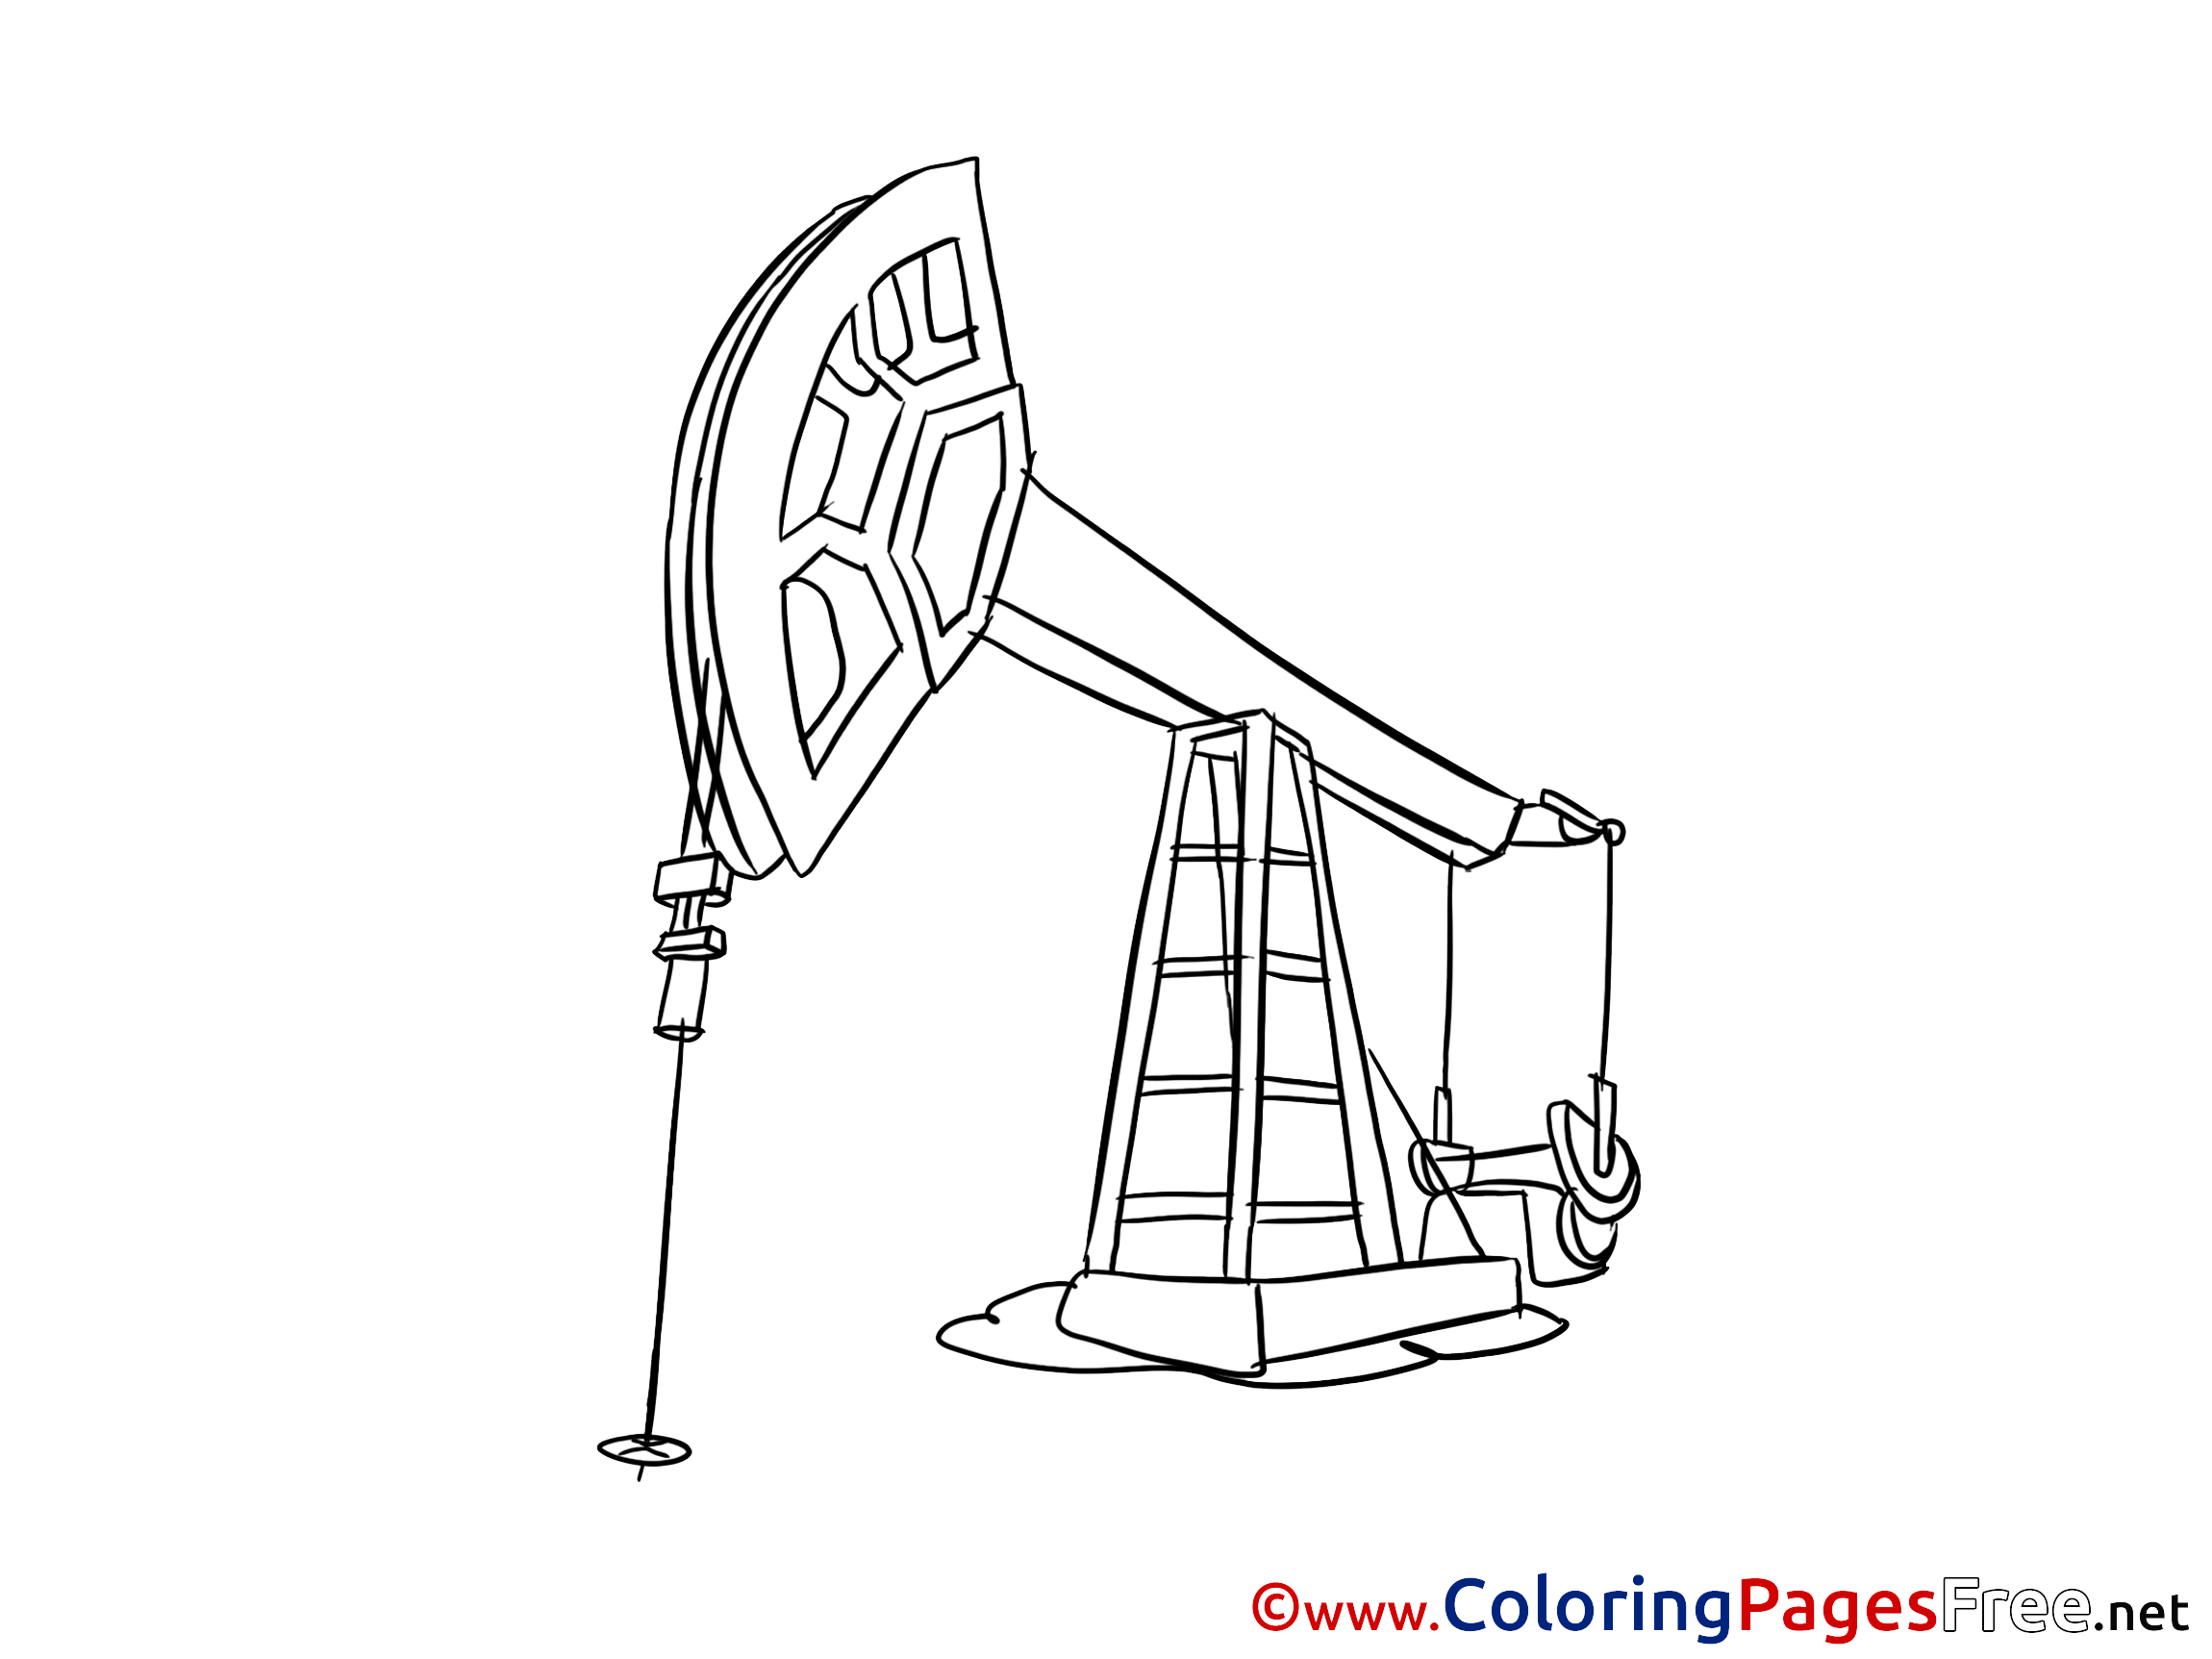 Oil Derrick printable Coloring Sheets download